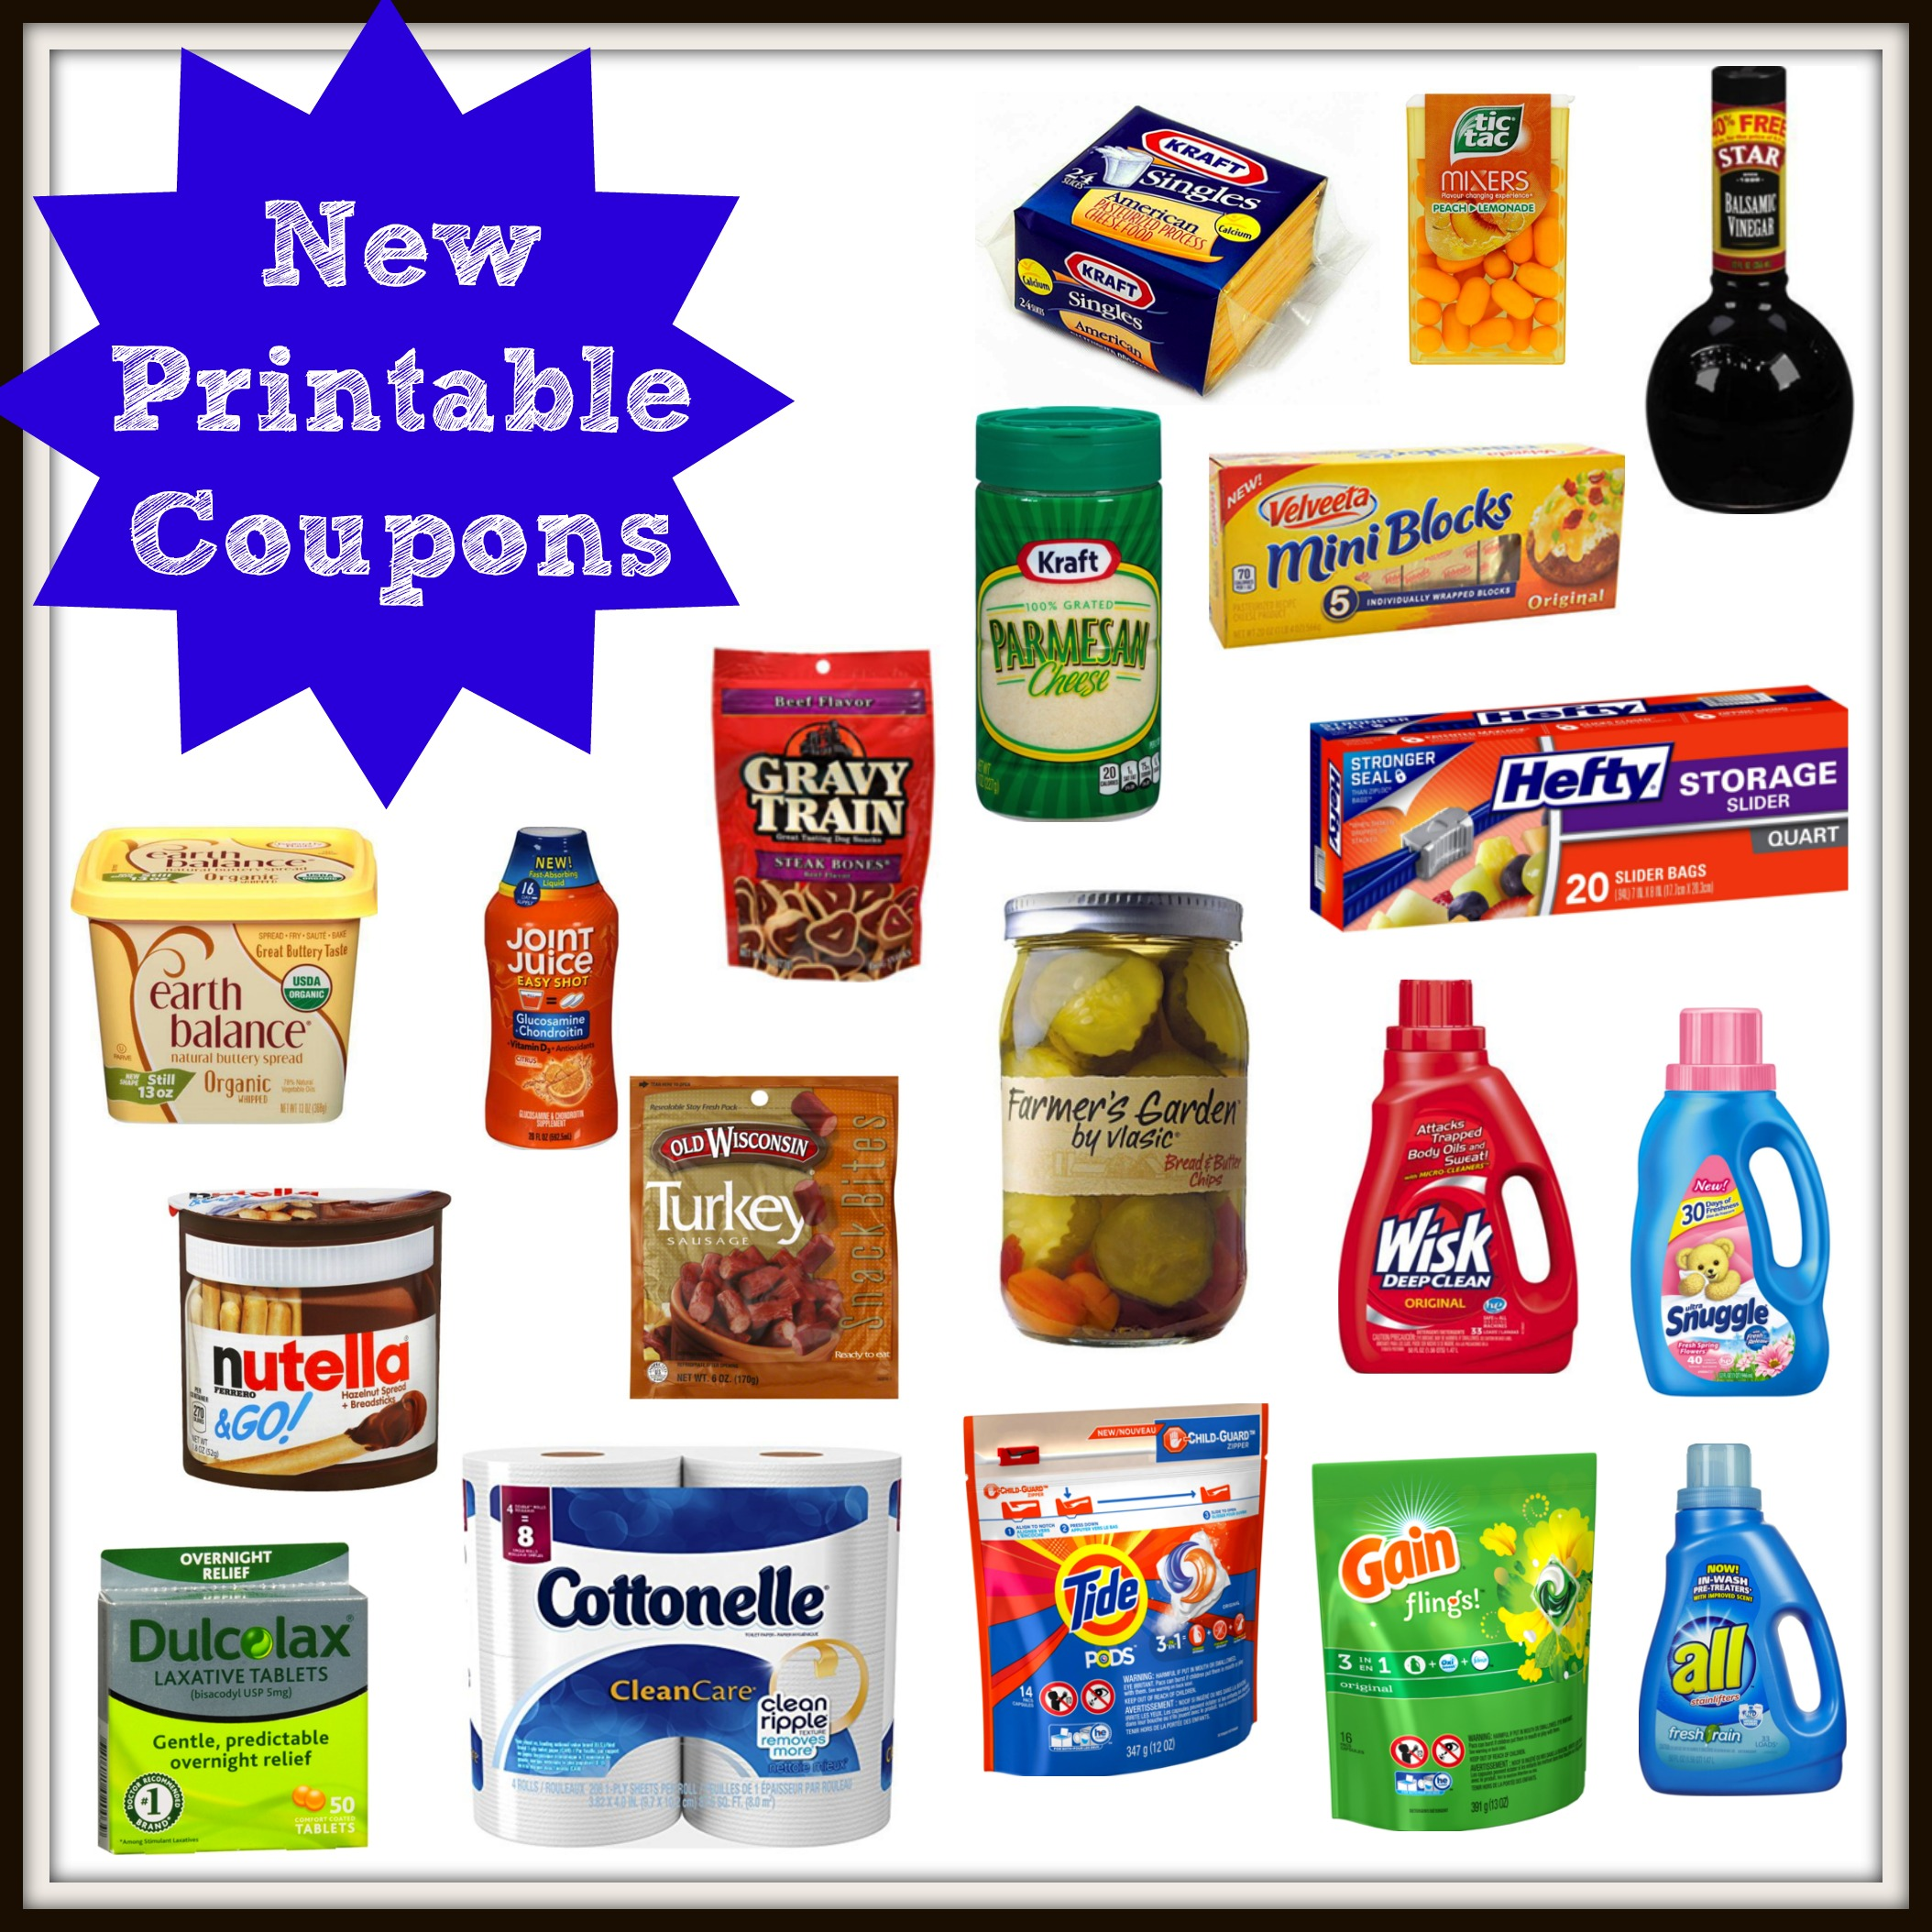 photograph relating to Kraft Coupons Printable identified as Fresh Printable Coupon codes! KRAFT, all, Snuggle, Tide, Income